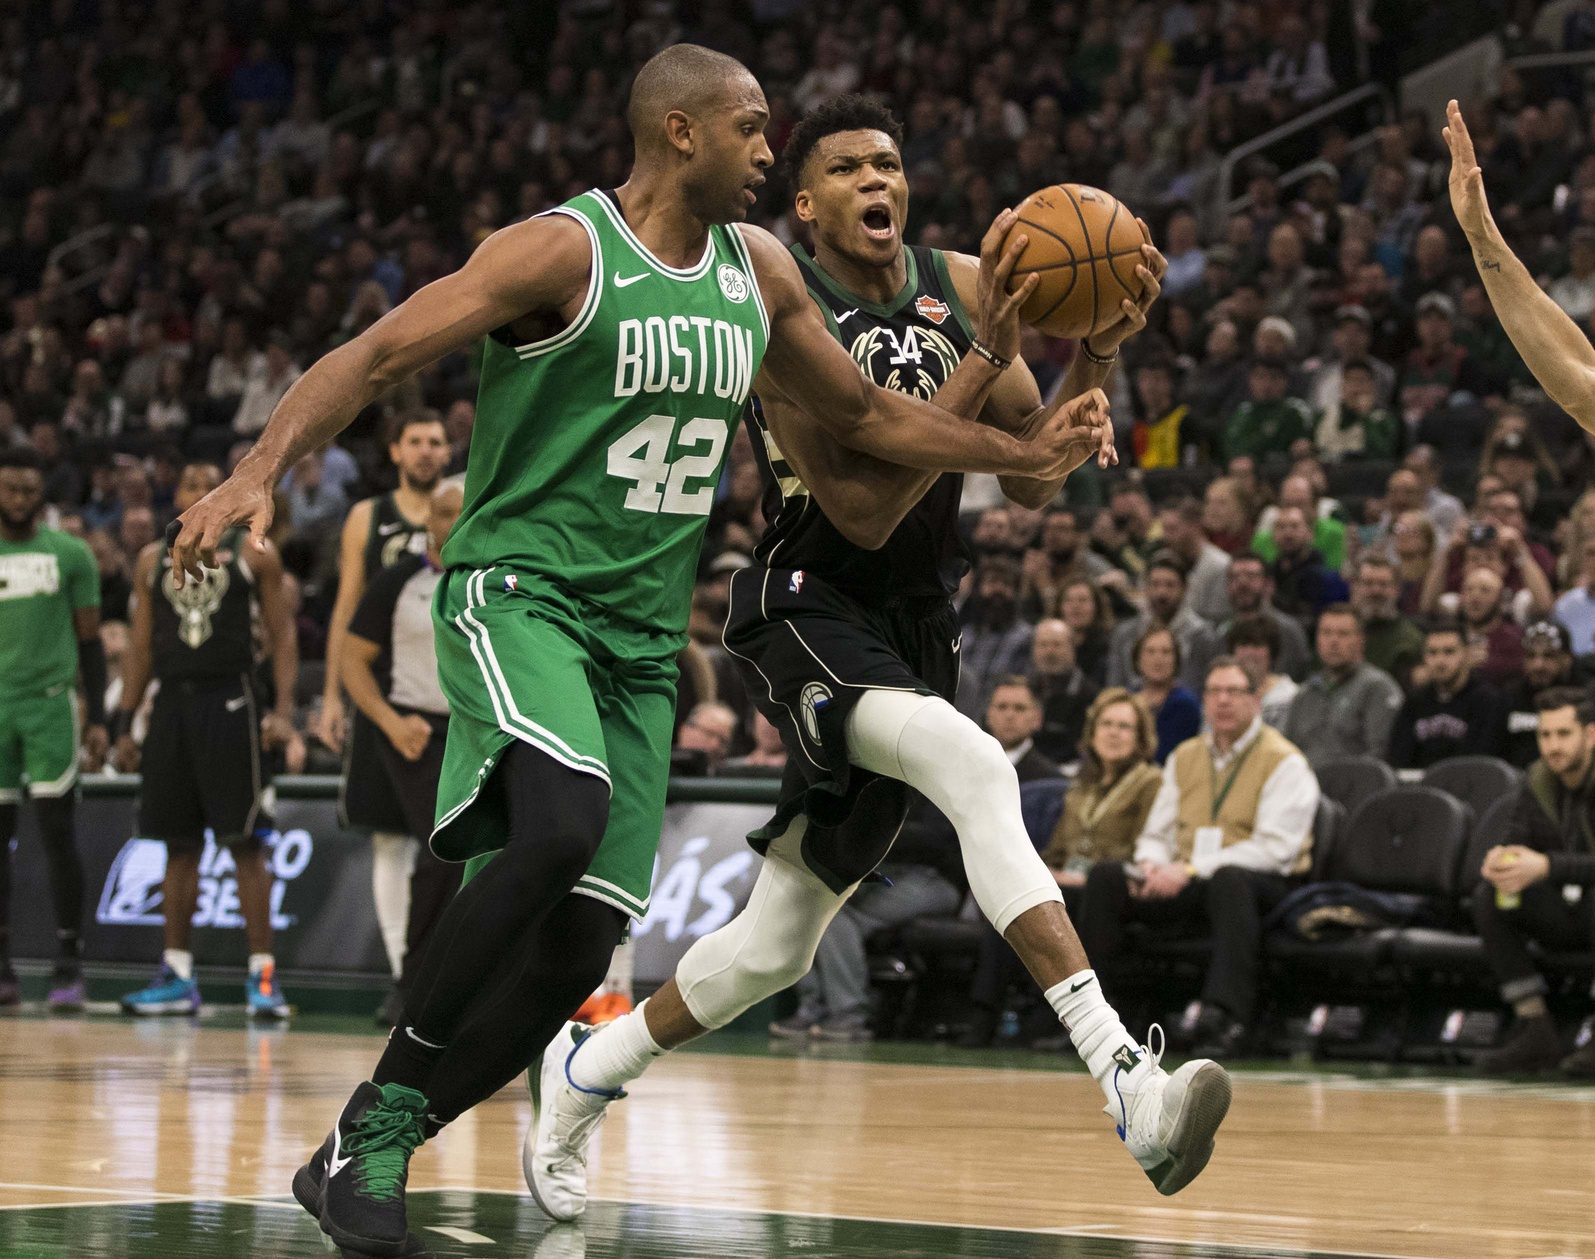 Tomase: Boston Celtics may have only one path out of their predicament -- winning an NBA title for Kyrie Irving and Jayson Tatum and the rest